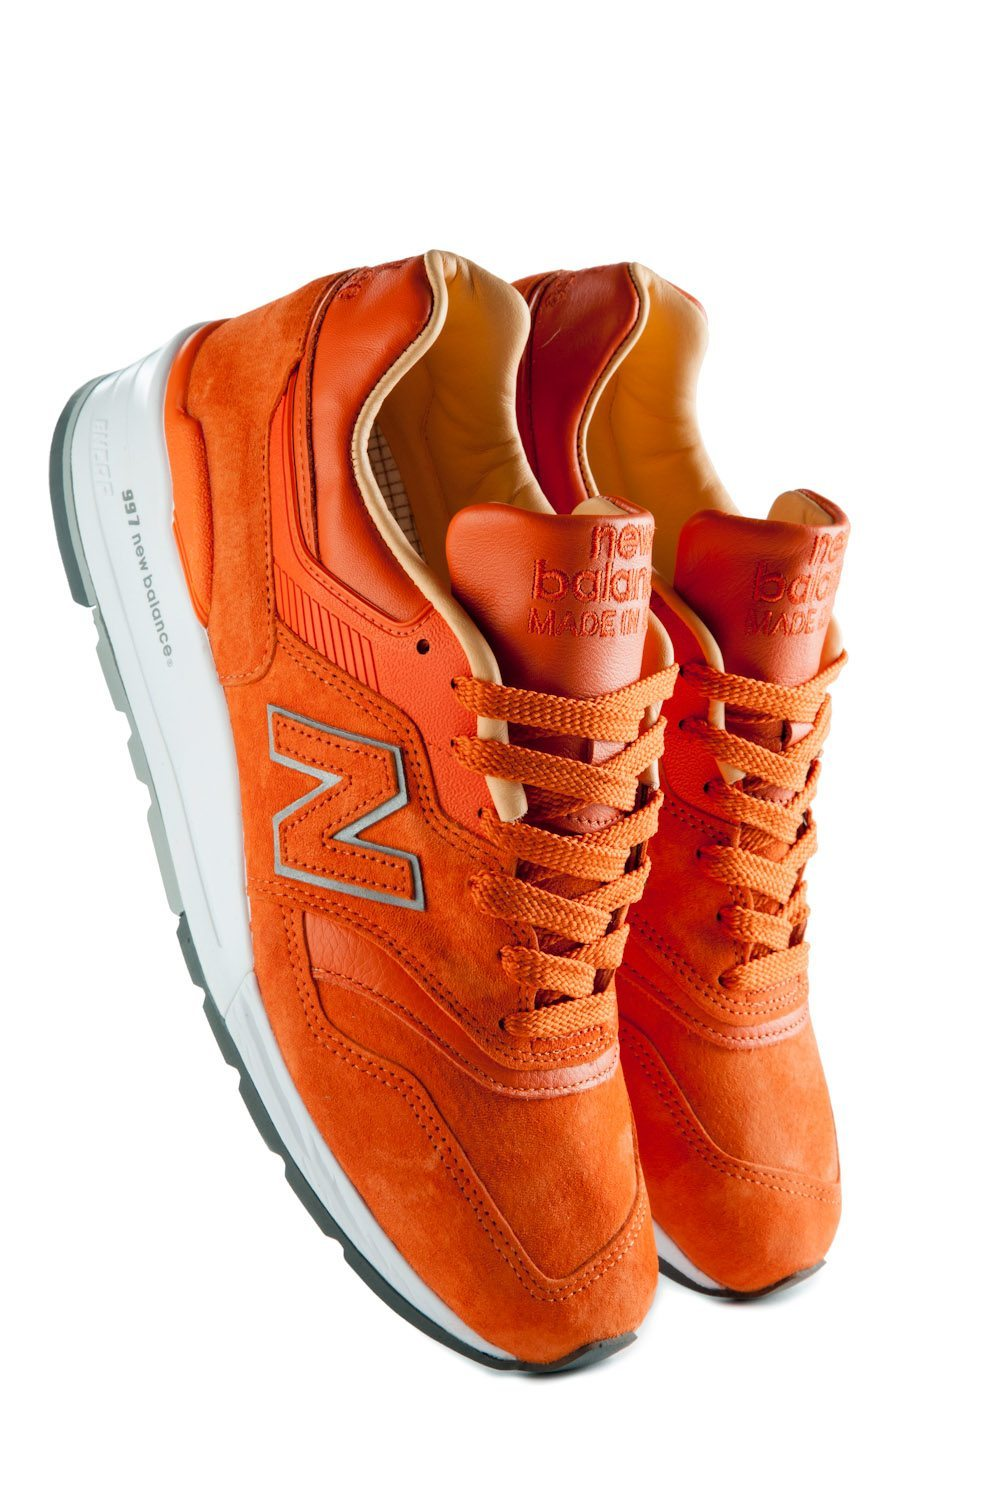 Concepts x New Balance 997 Luxury Goods 6